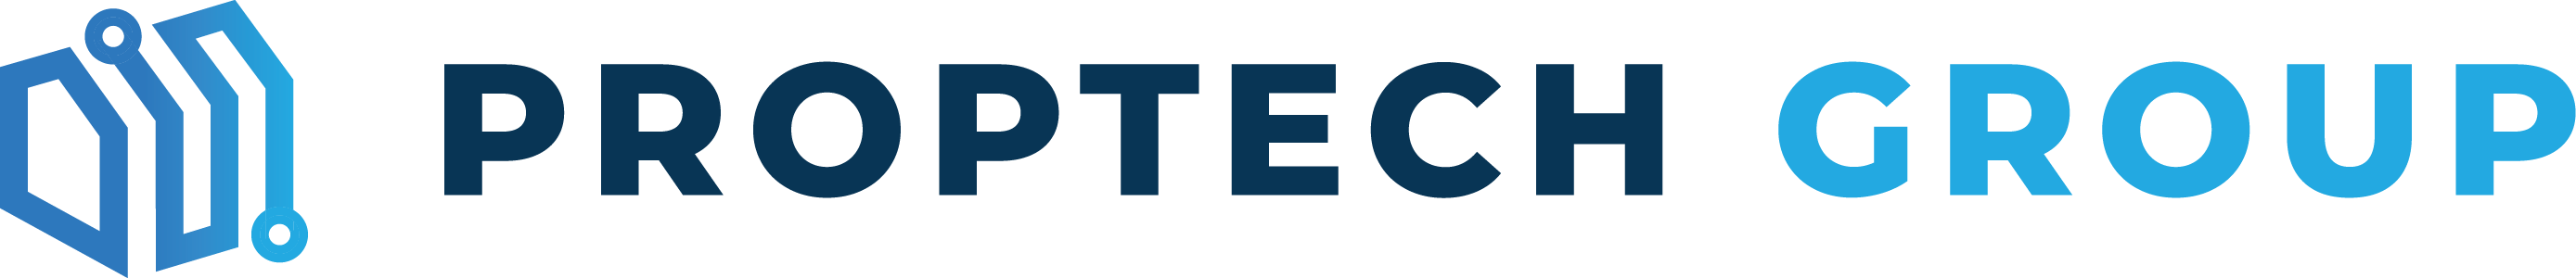 PropTech Group